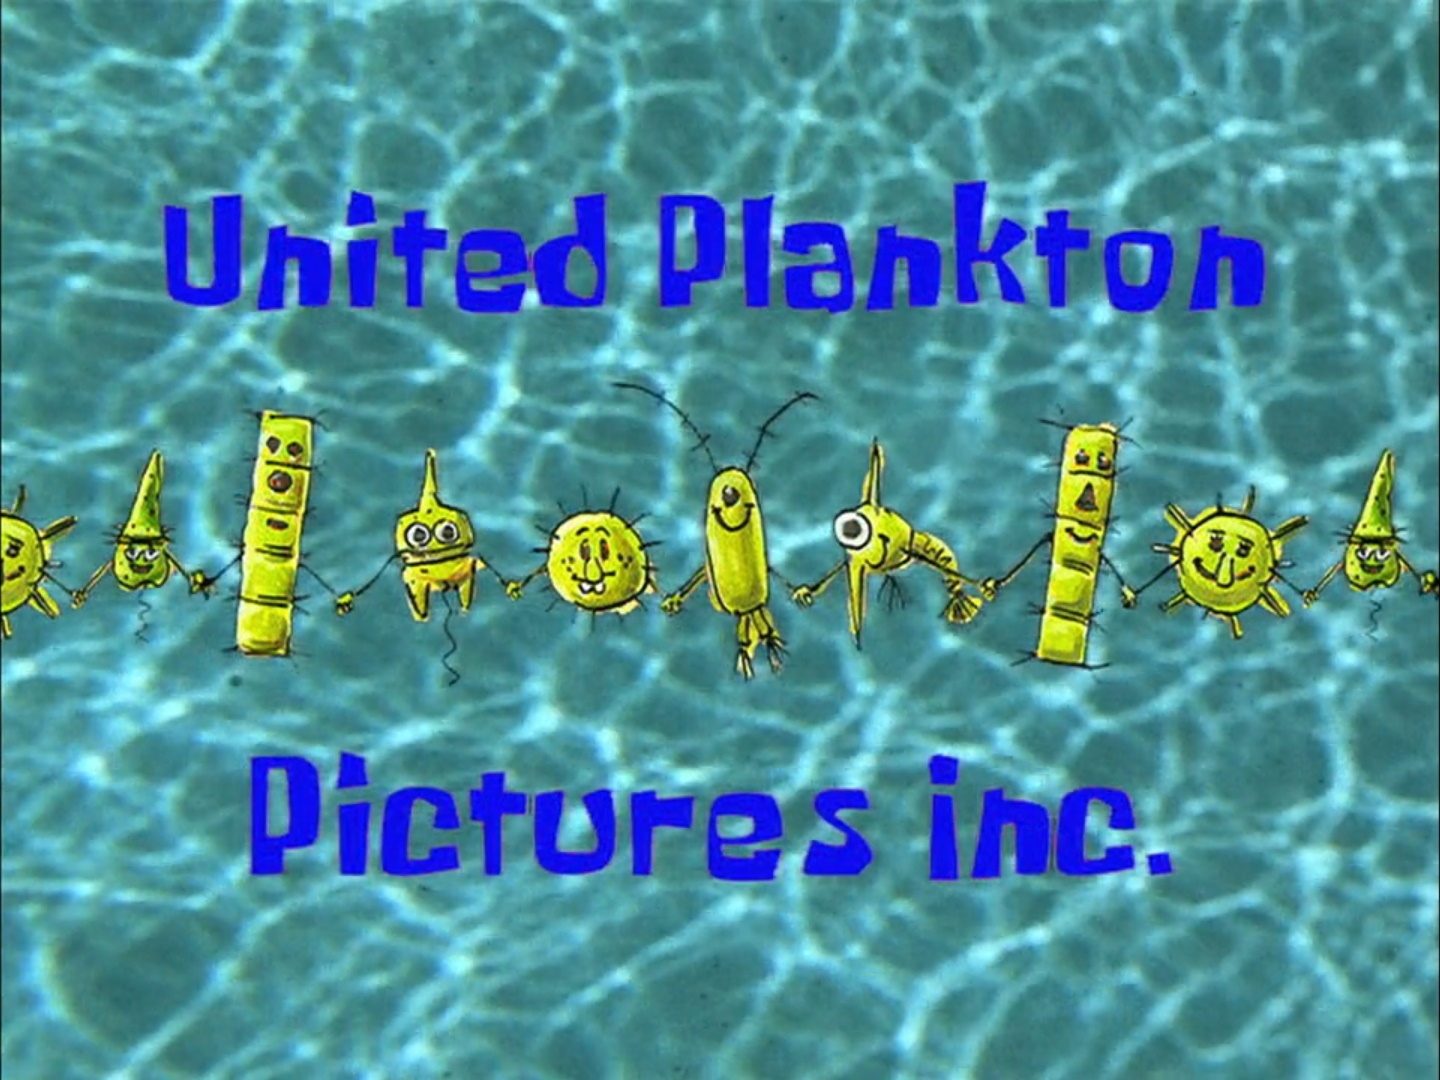 File:United Plankton Pictures.jpg